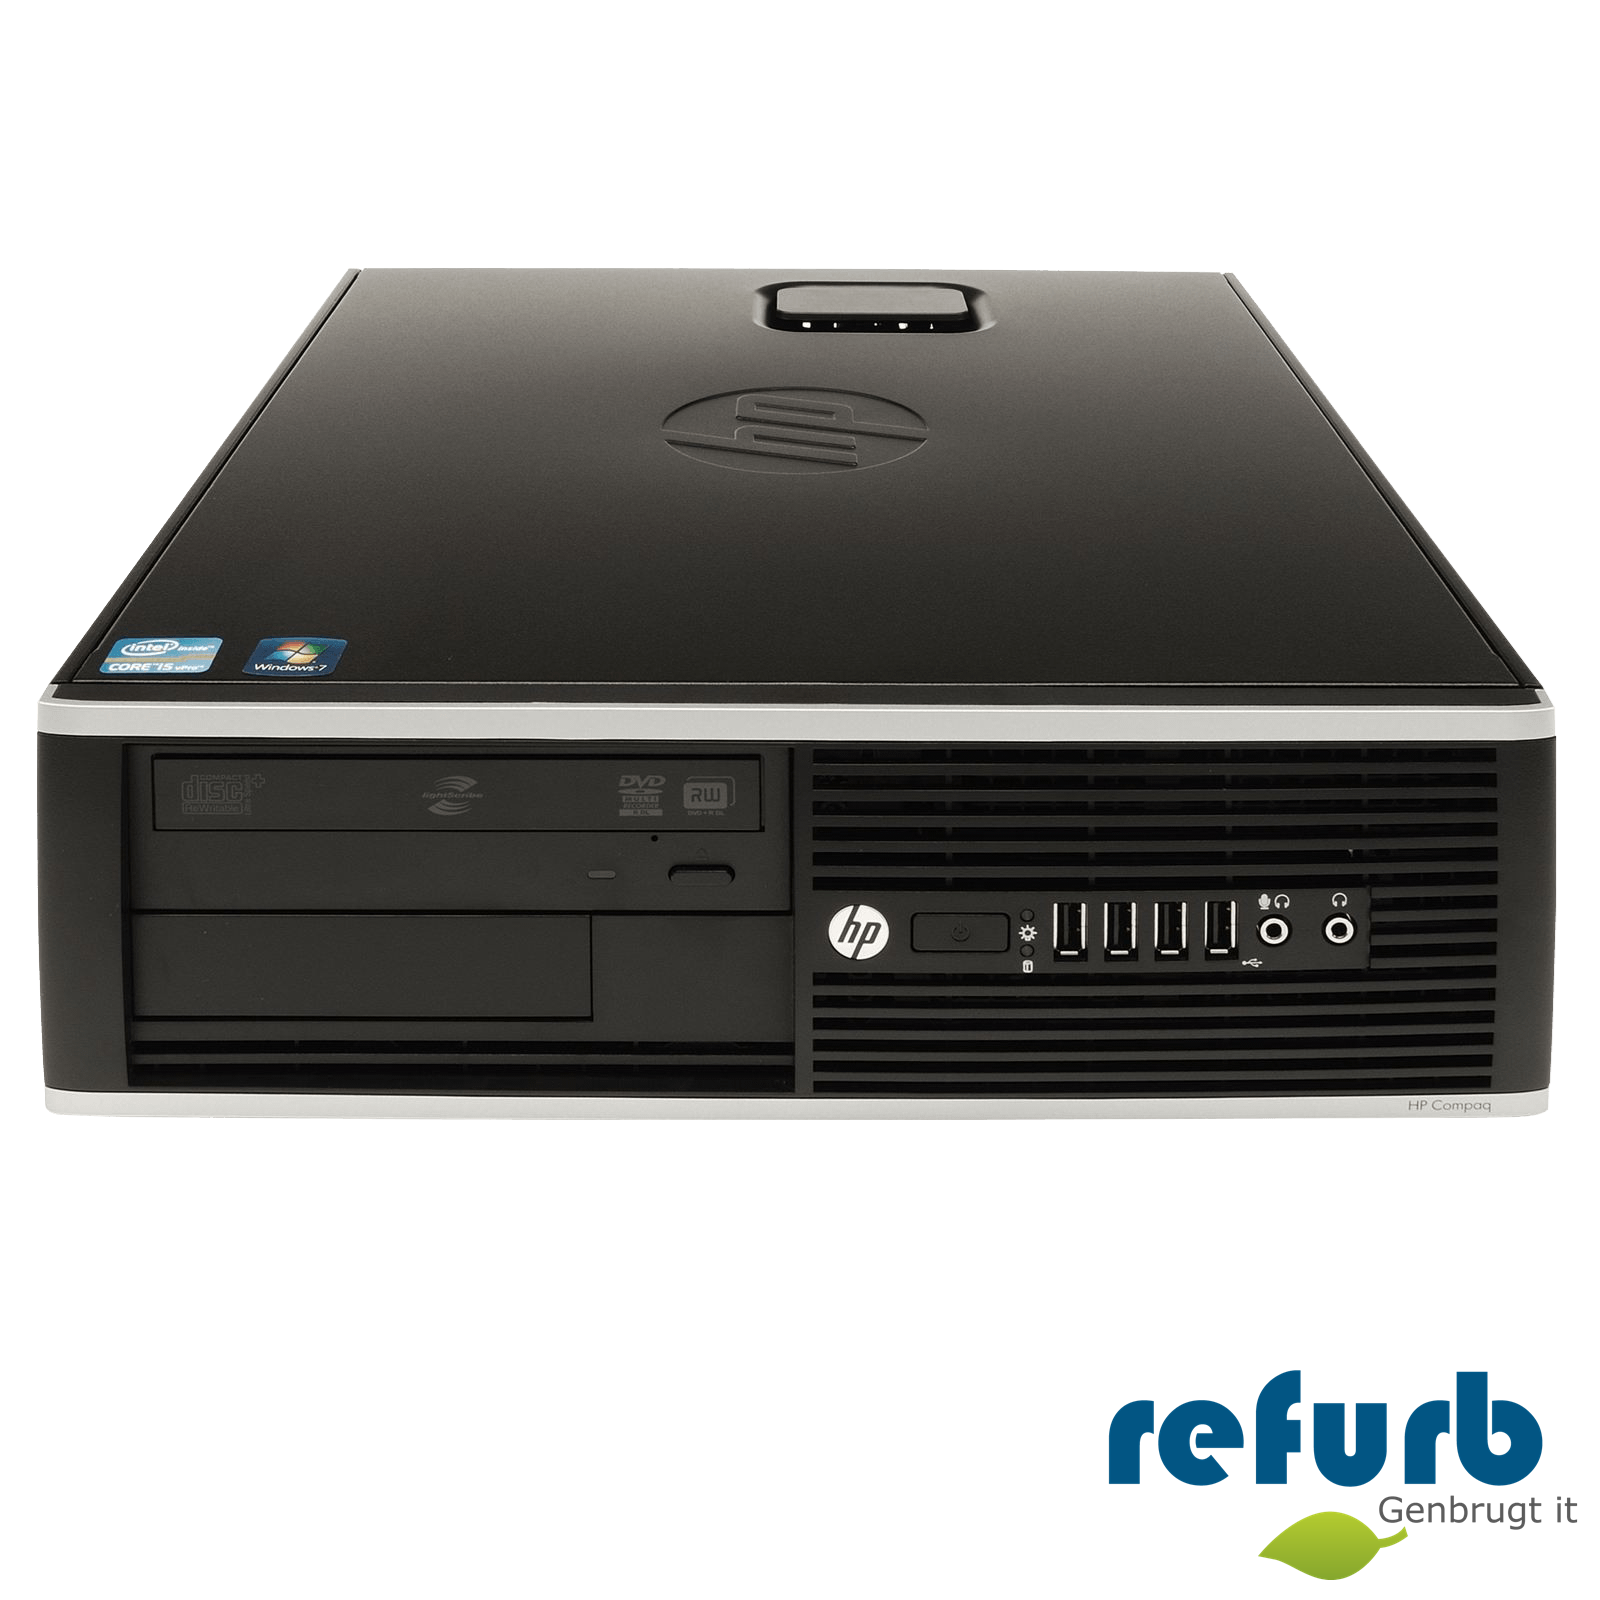 Hp compaq 8100 elite sff fra Hp på refurb